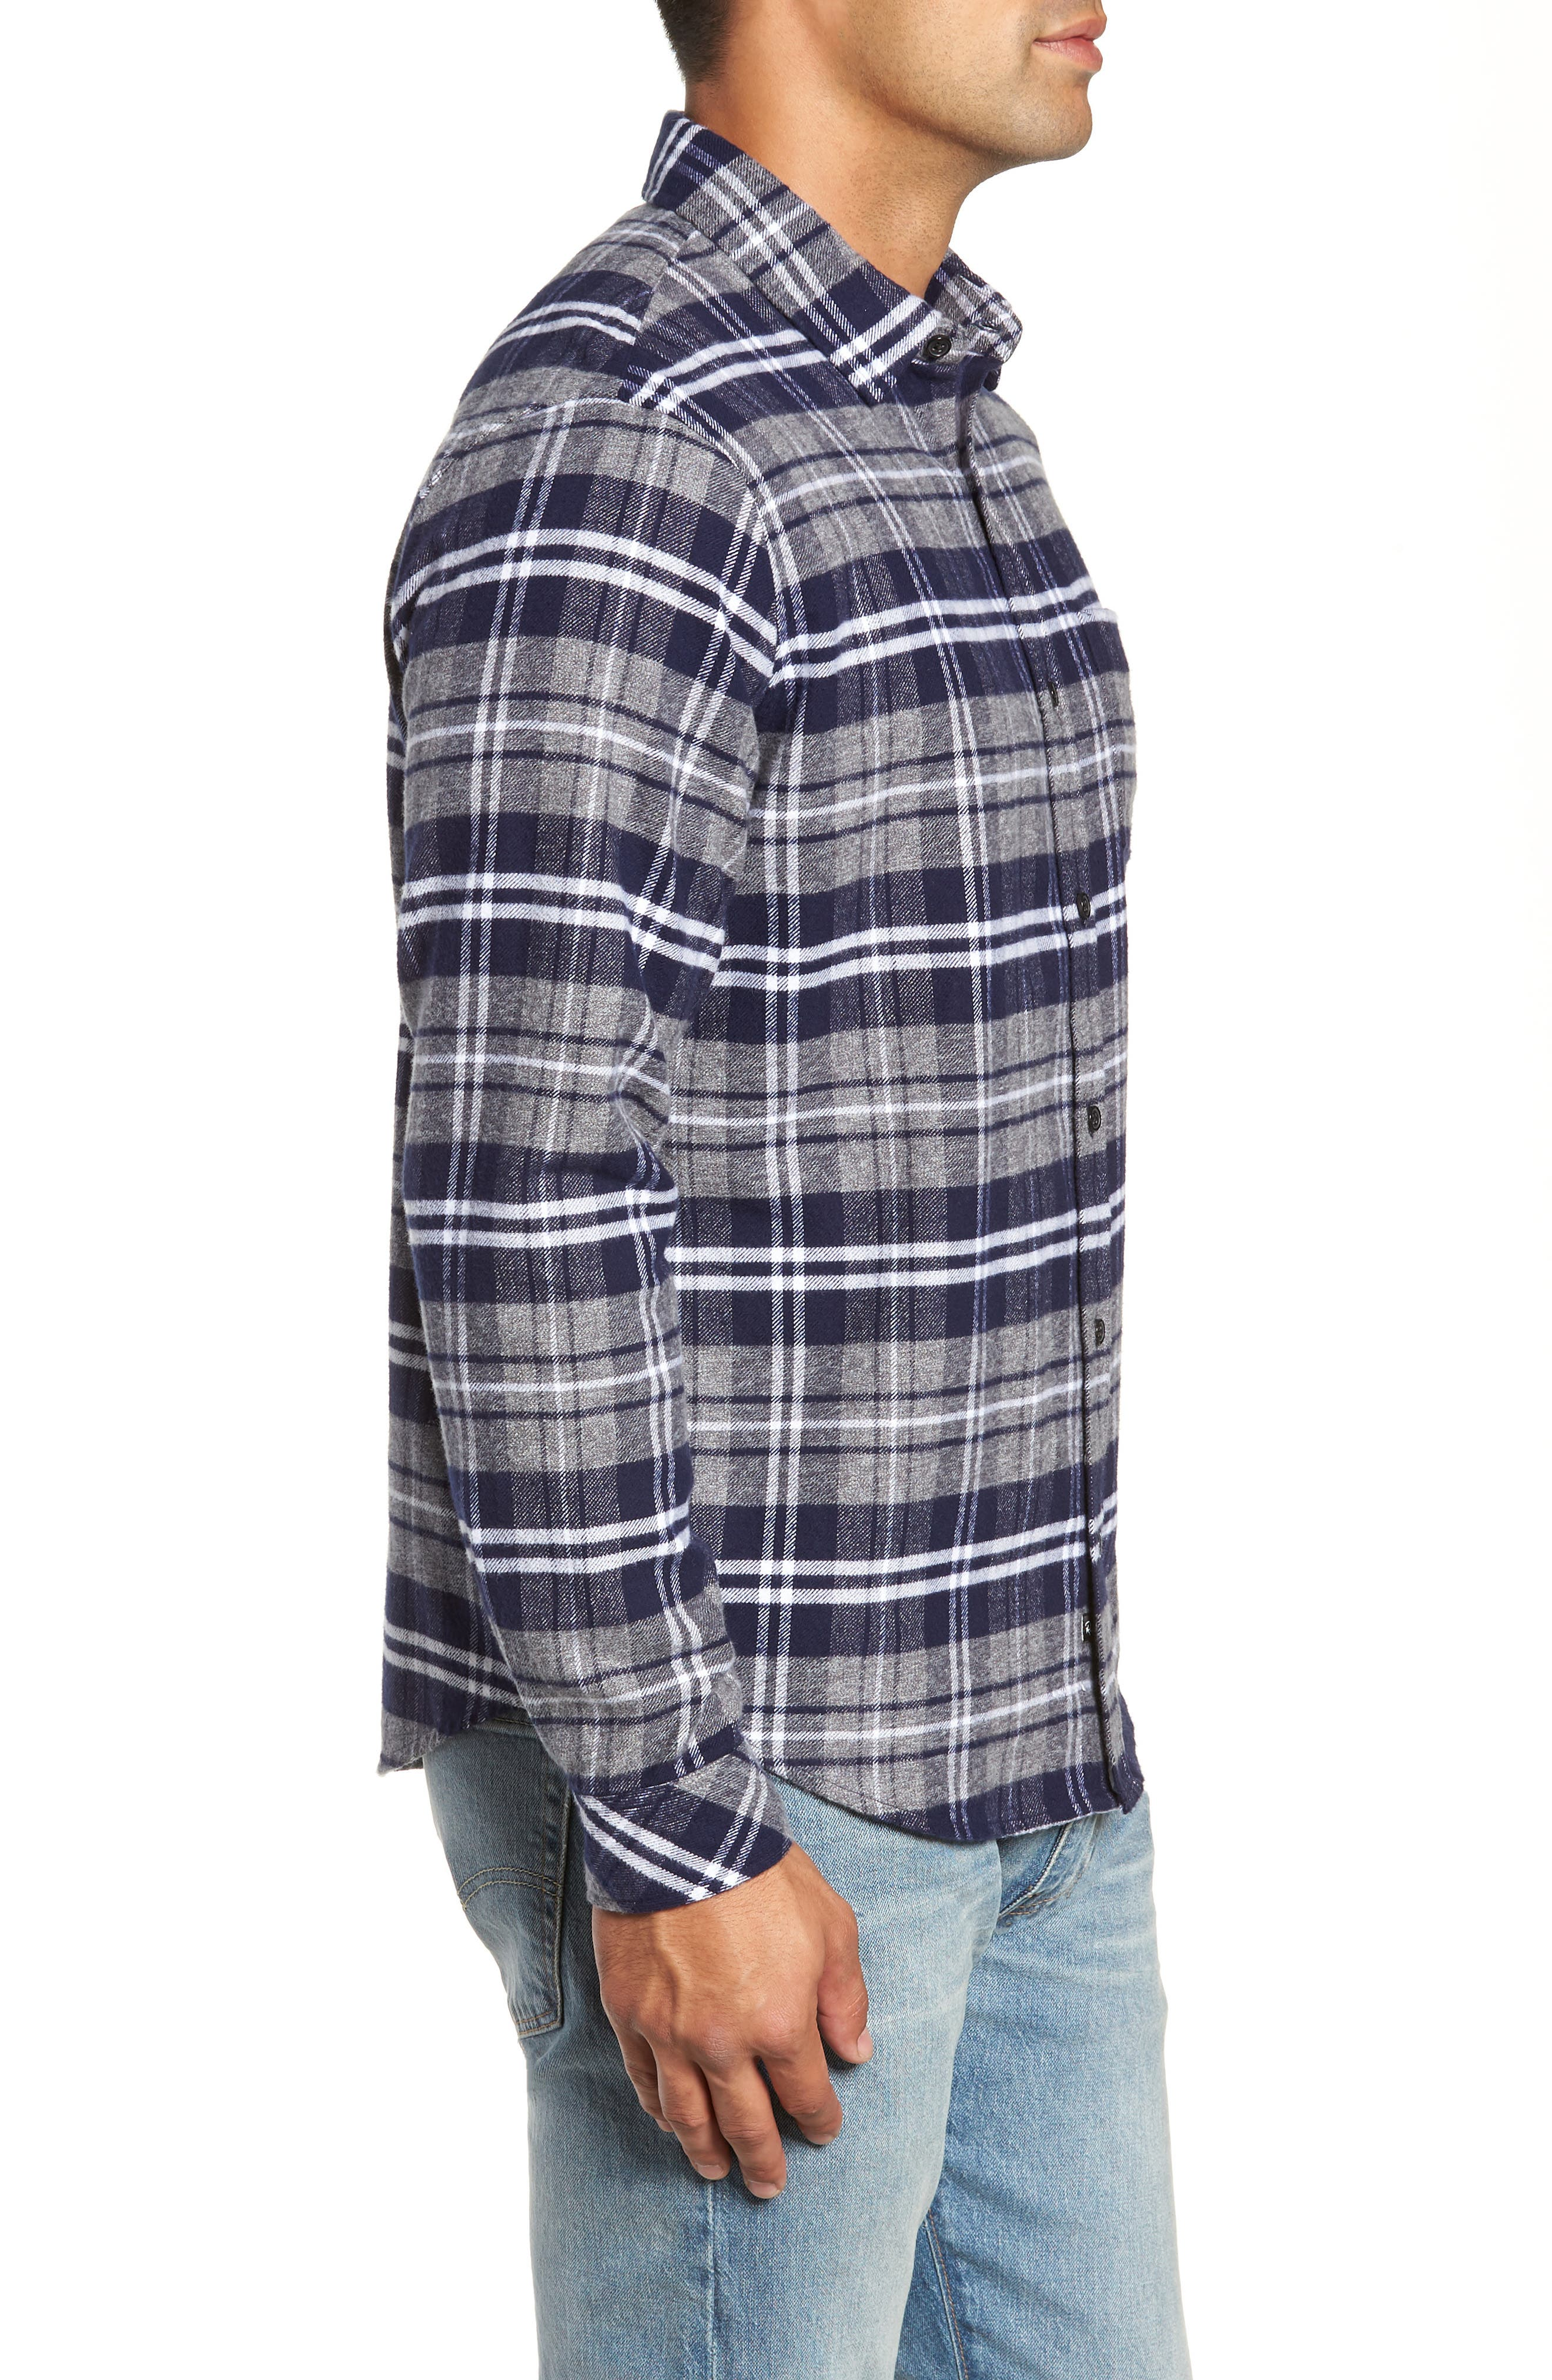 Forrest Slim Fit Plaid Flannel Sport Shirt,                             Alternate thumbnail 4, color,                             NAVY/LIGHT GREY/WHITE